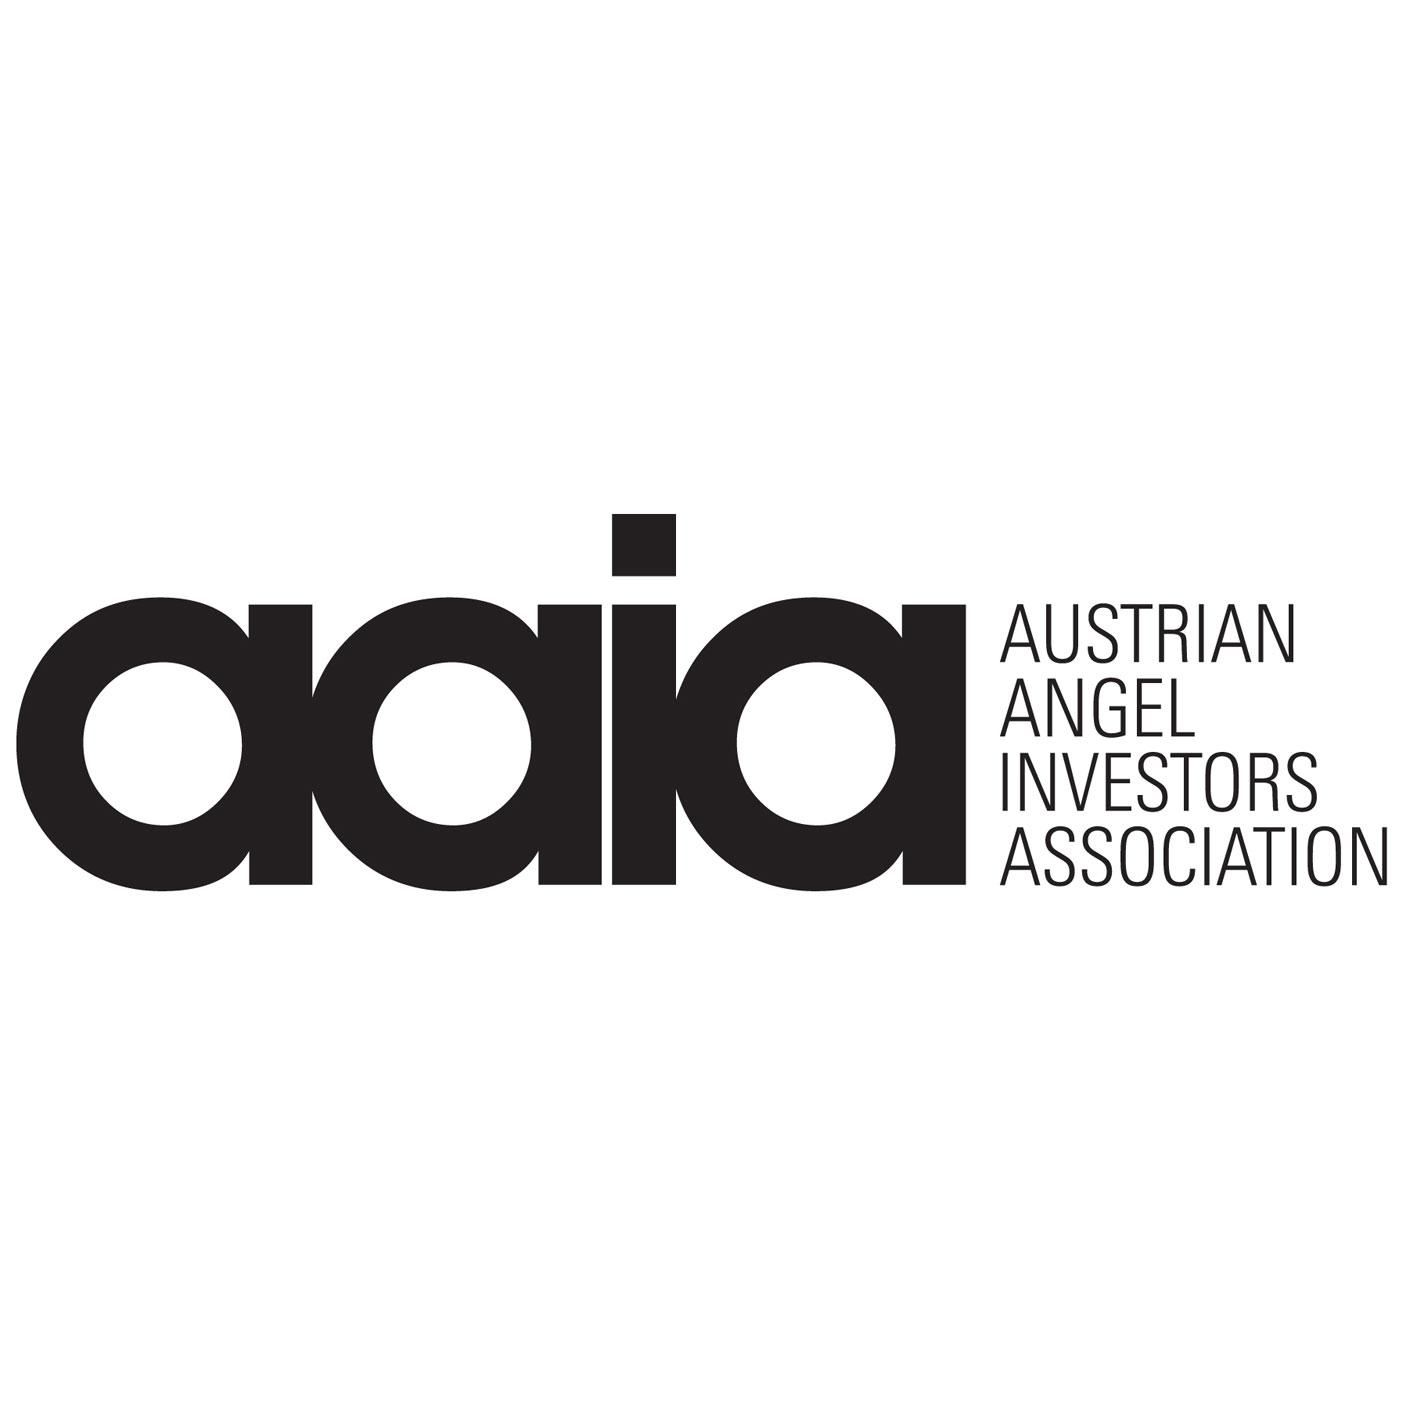 Austrian Angel Investors Association